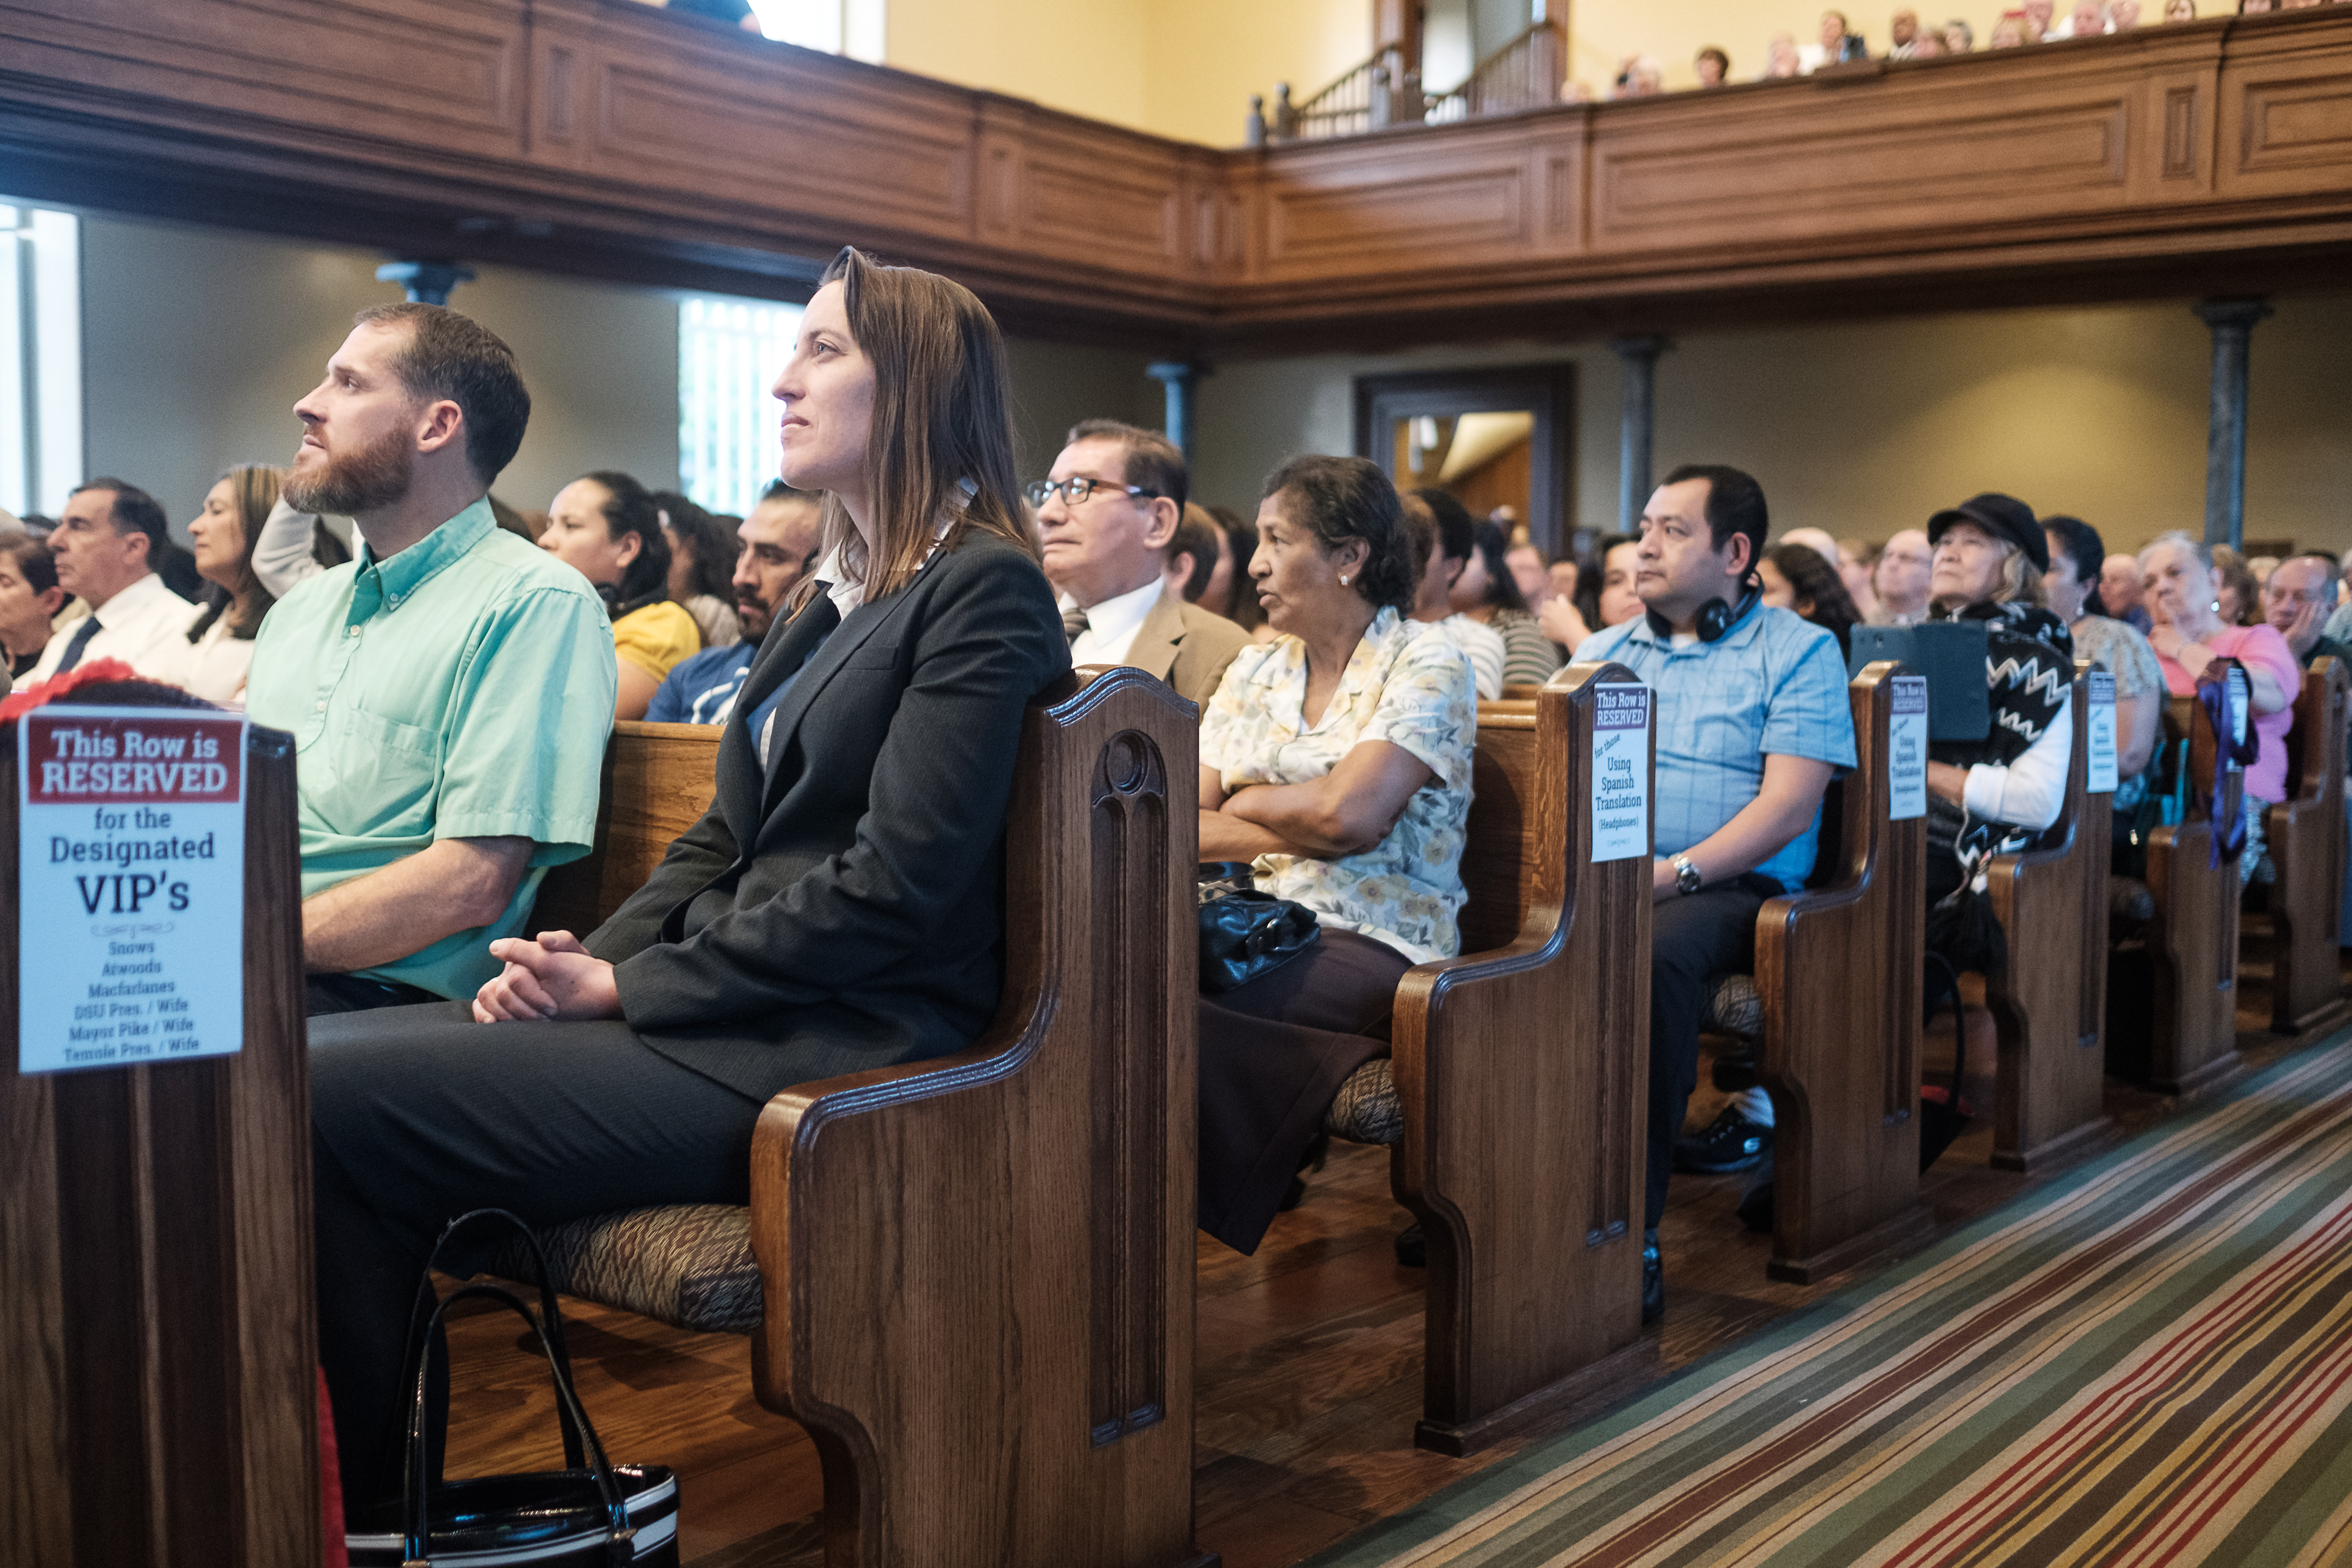 Attendees listen during the Historic Interfaith Tribute at the St. George Tabernacle in St. George, Utah on Thursday, May 2, 2019.